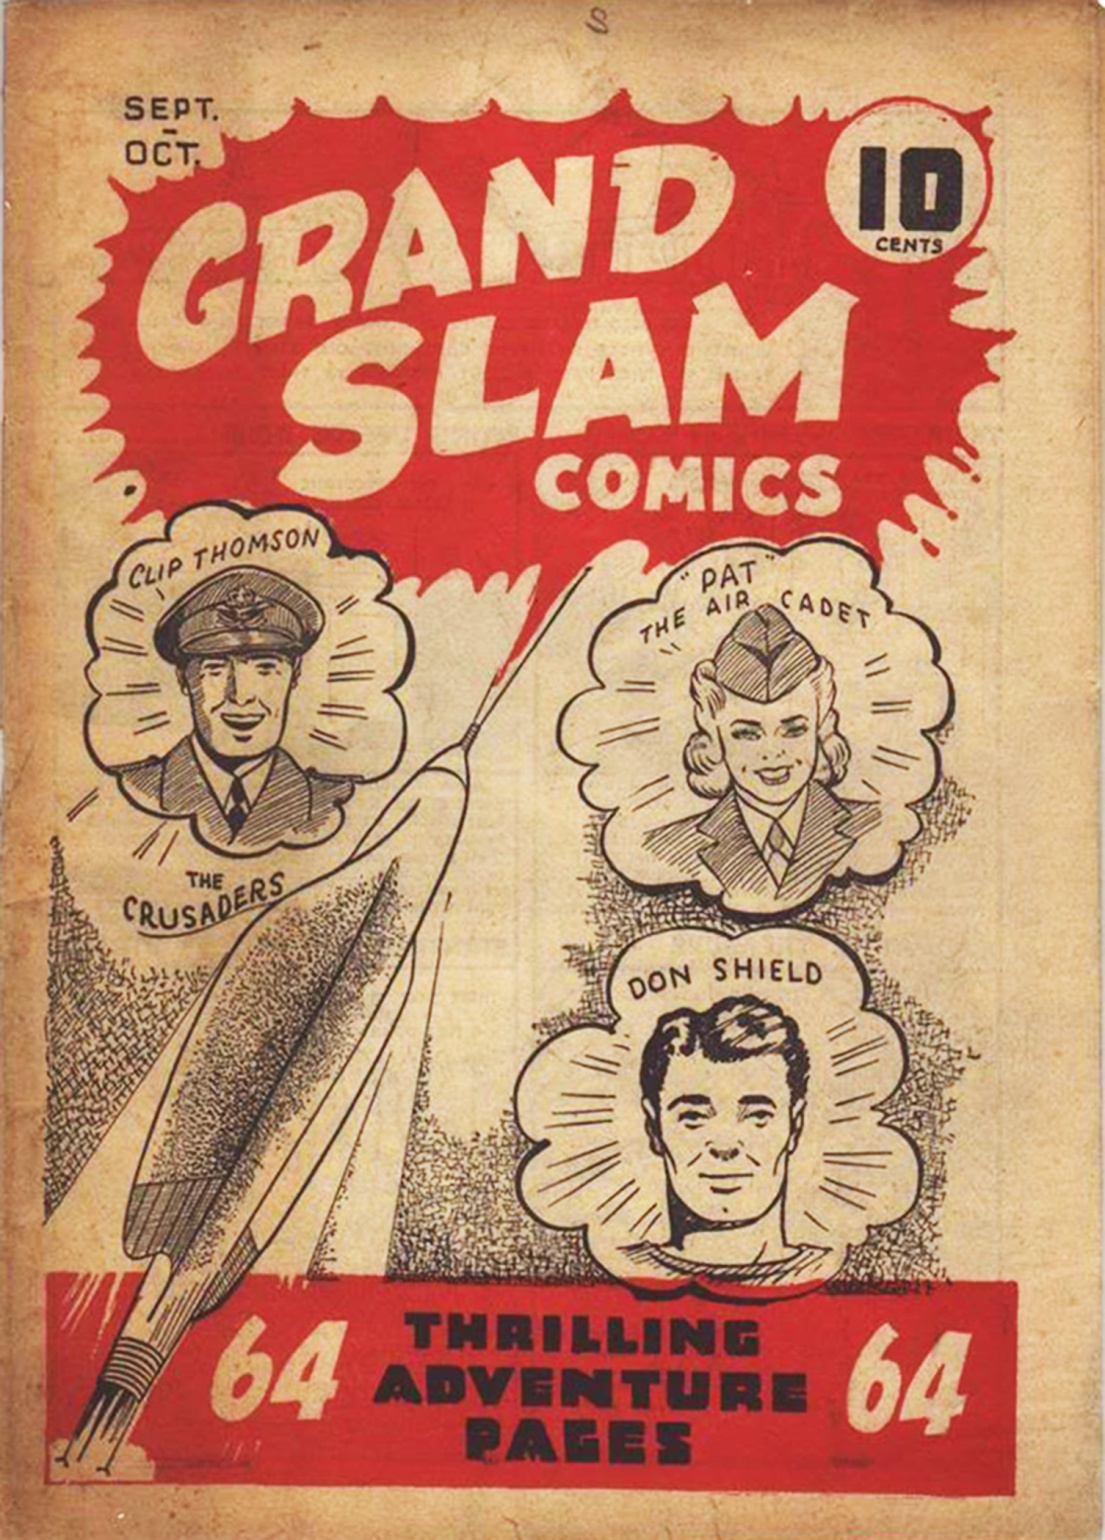 C:\Users\Robert\Documents\CANADIAN CARTOONING ILLUSTRATION and ANIMATION\IMAGE COMIC BOOK COVERS\GRAND SLAM COMICS 1-1 Sept-Oct 1941.jpg